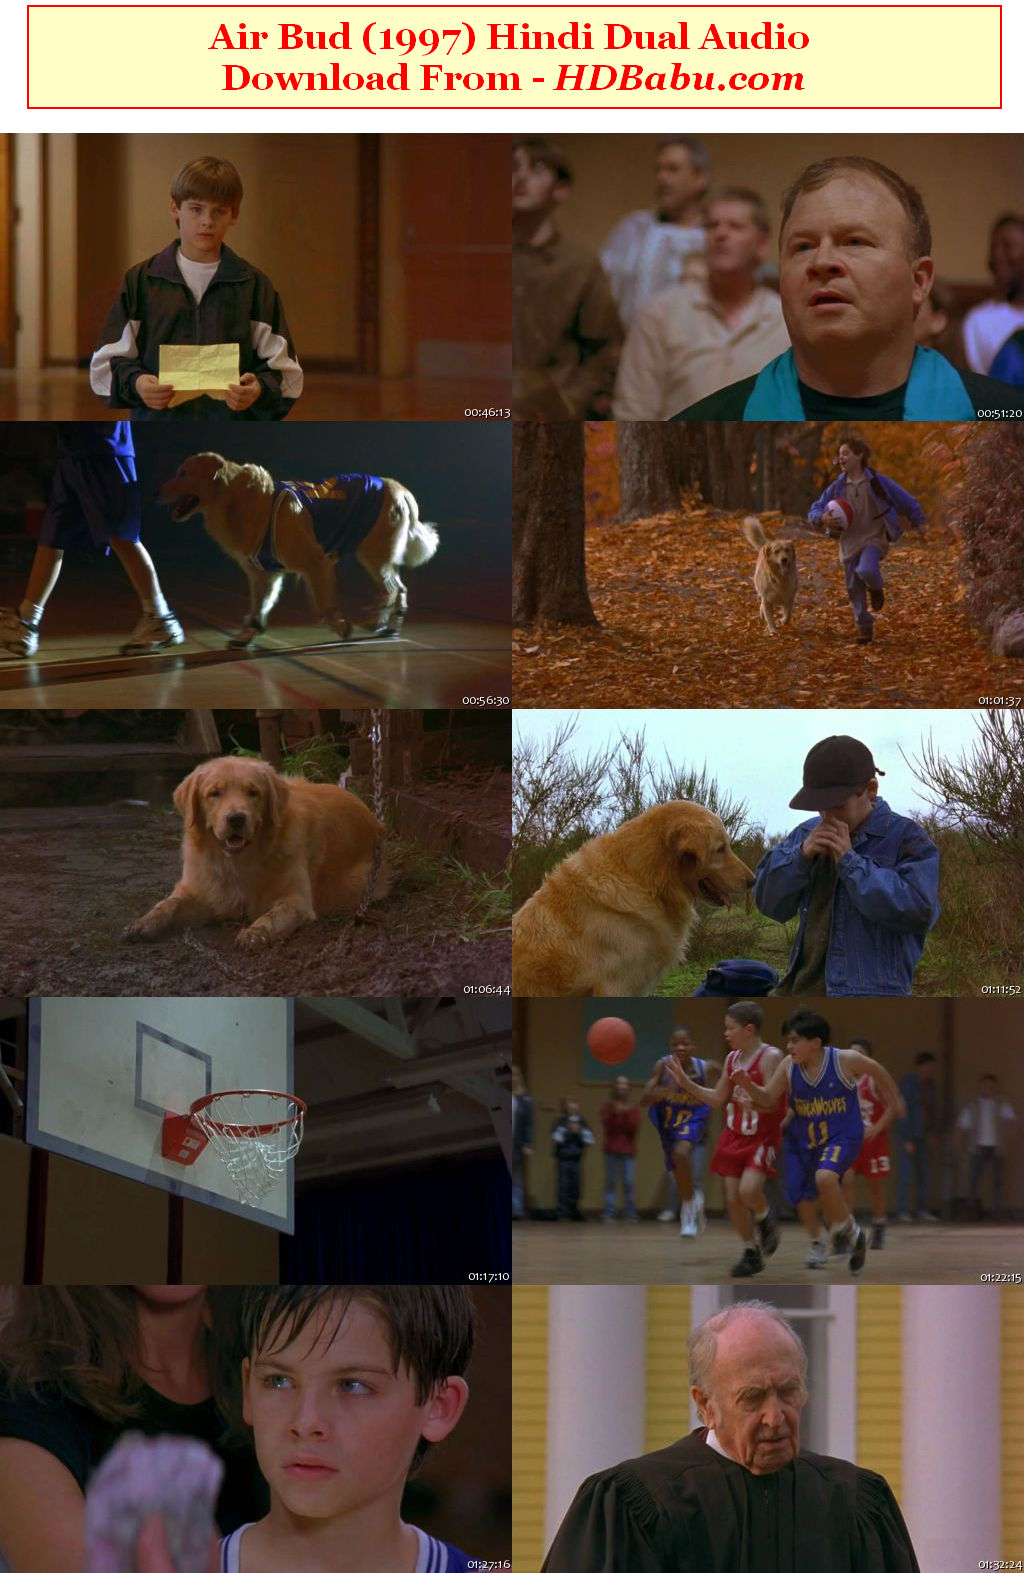 Air Bud Dual Audio Full Movie Download